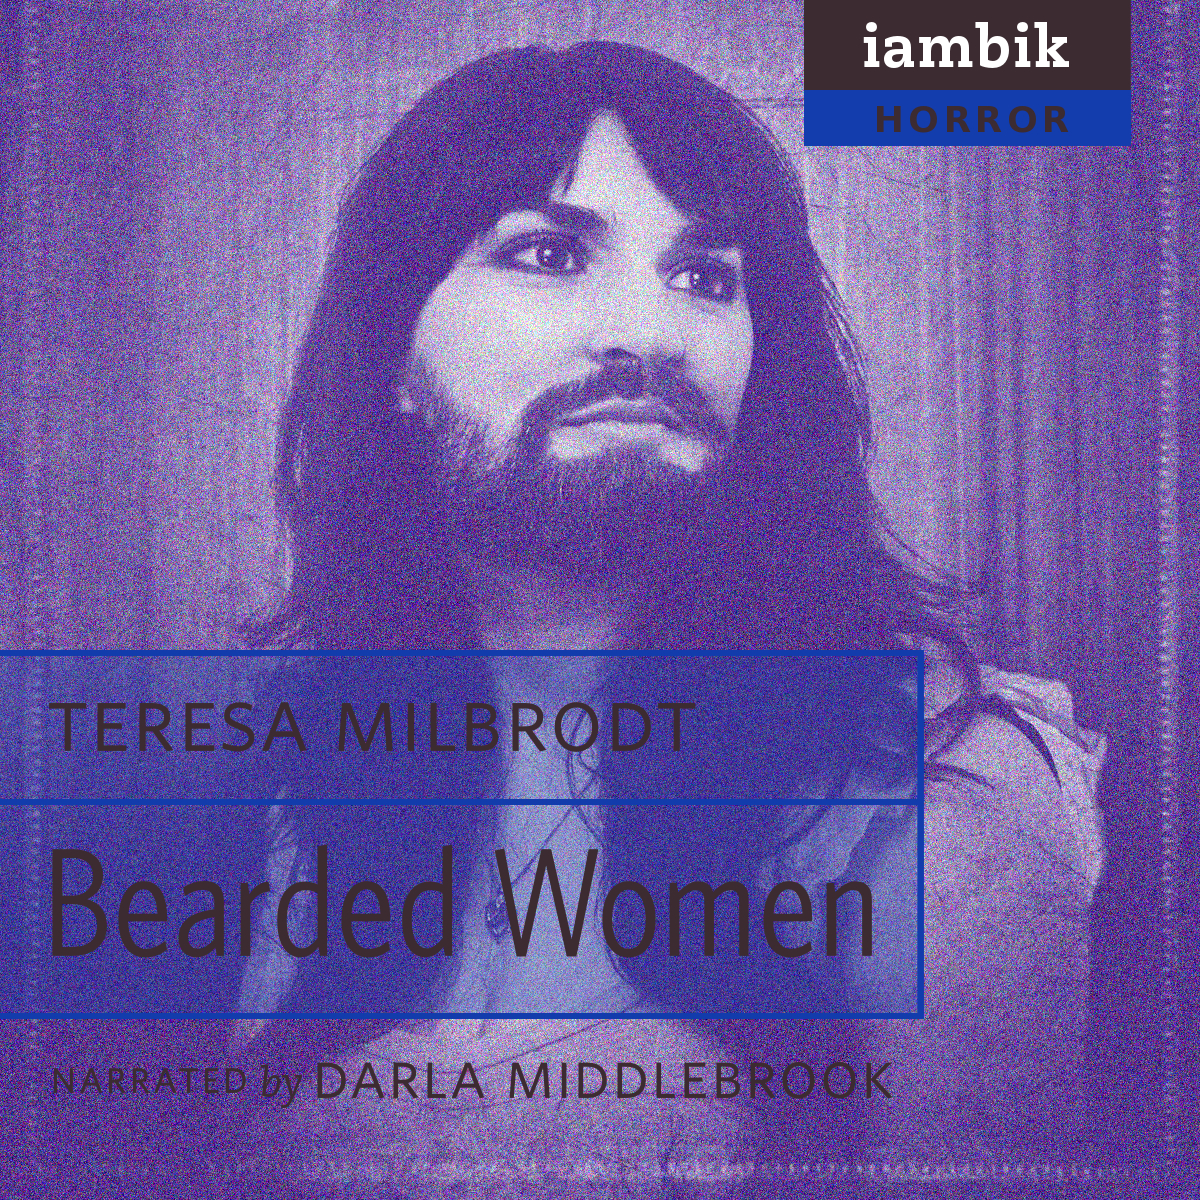 Cover photo of Bearded Women